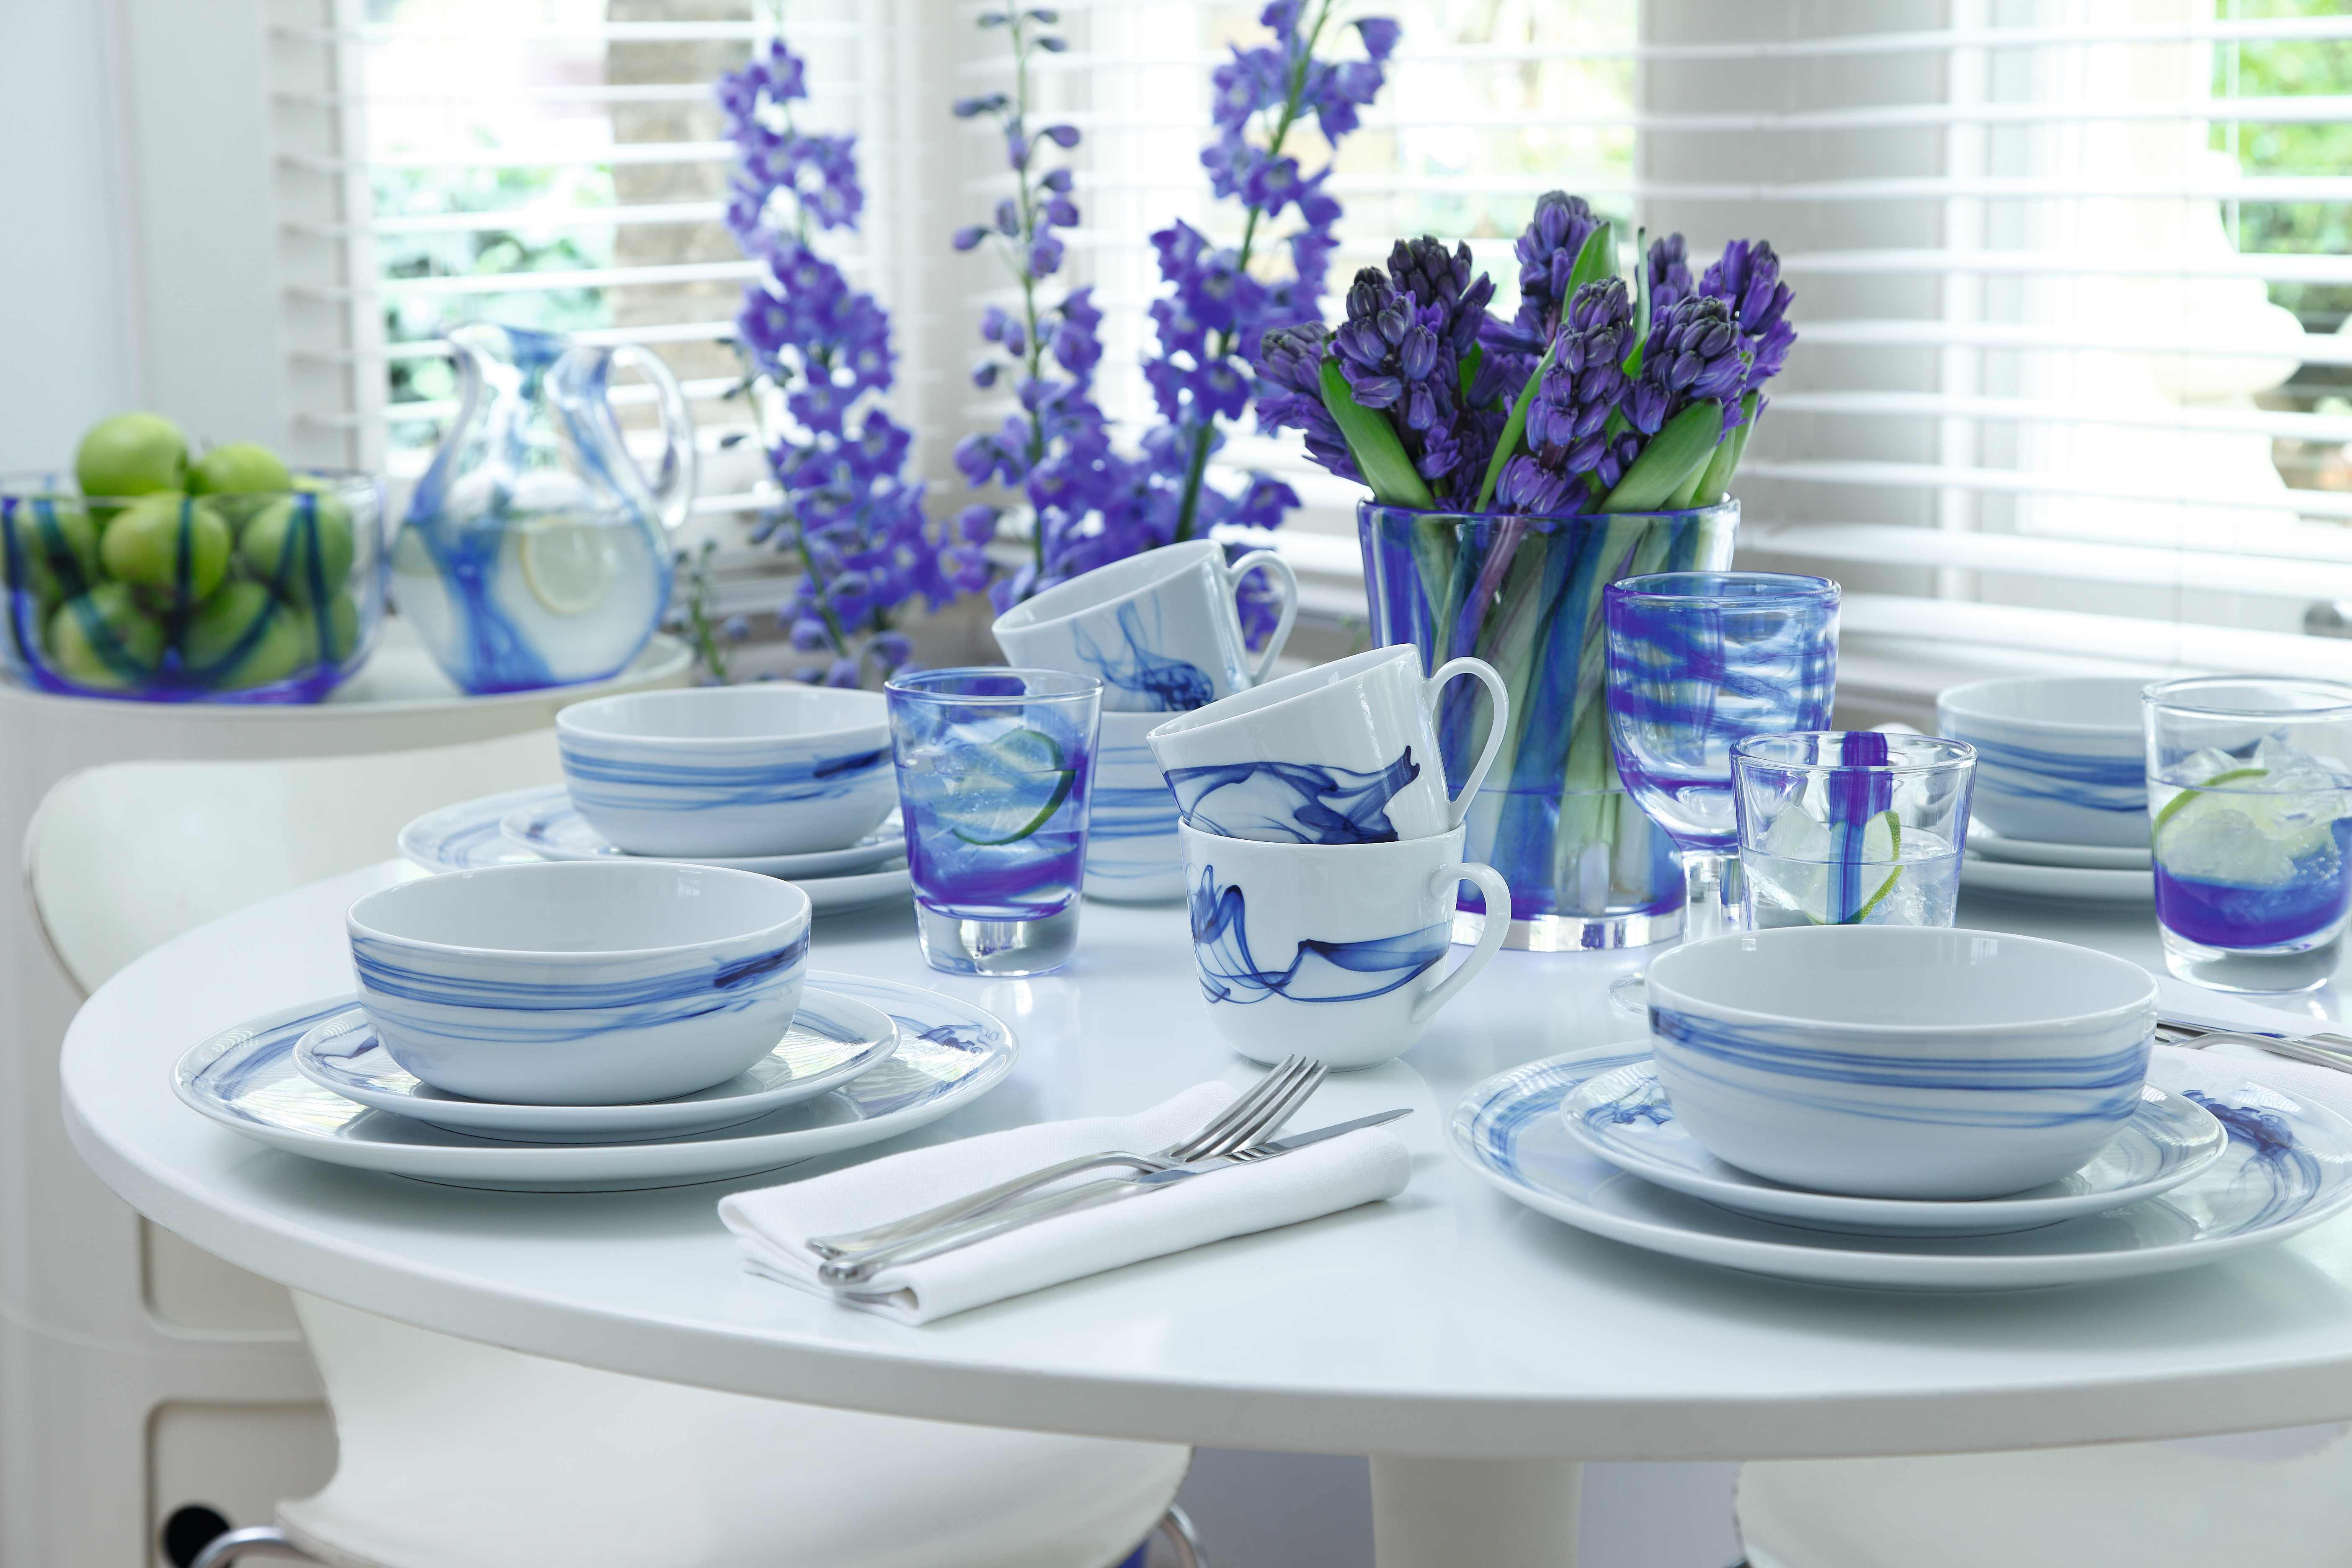 Show you how to manage crockery in kitchen by Menalem21